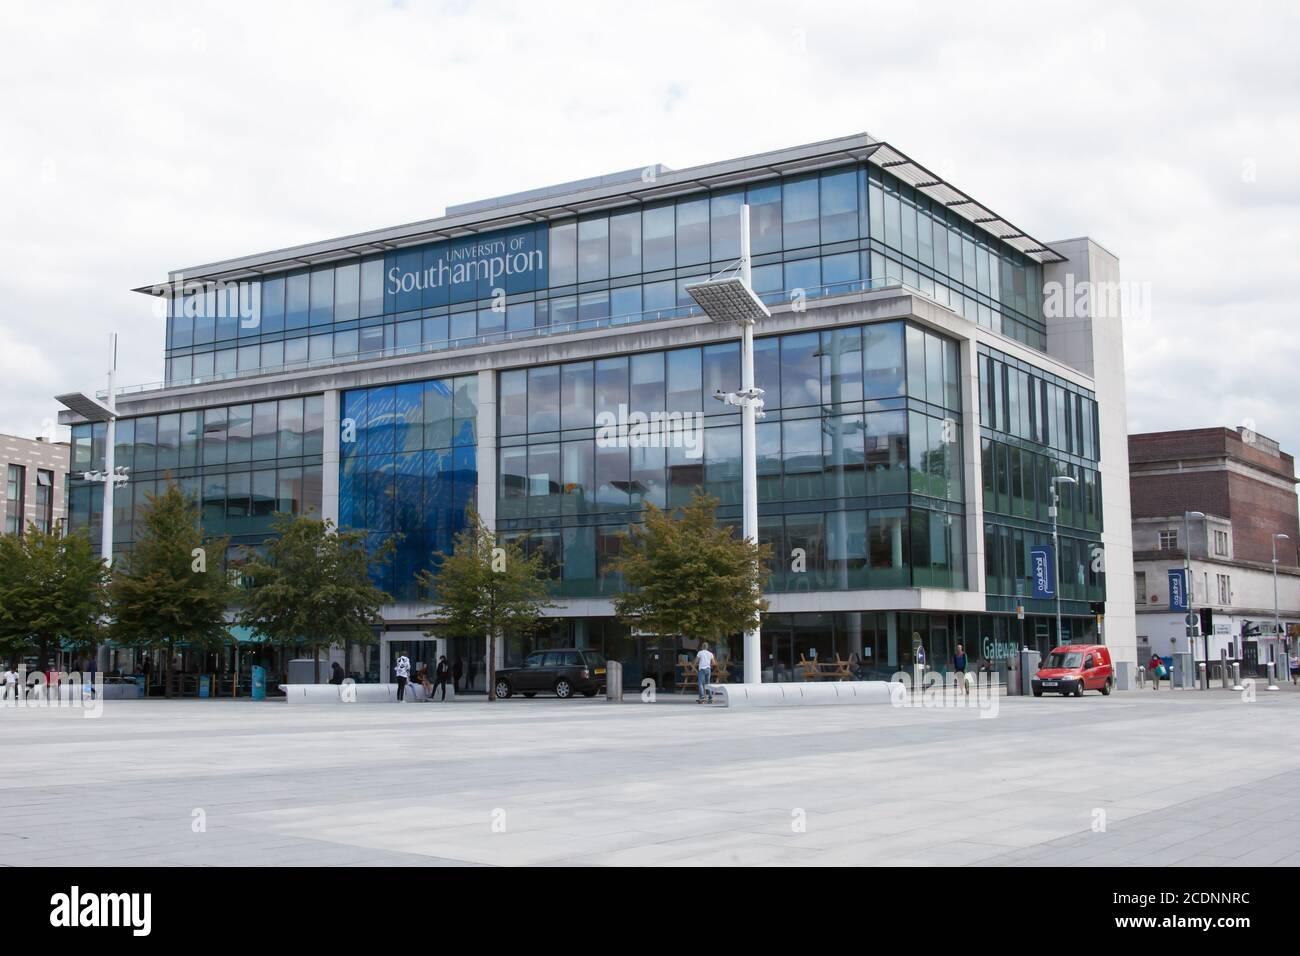 Southampton City College High Resolution Stock Photography And Images Alamy